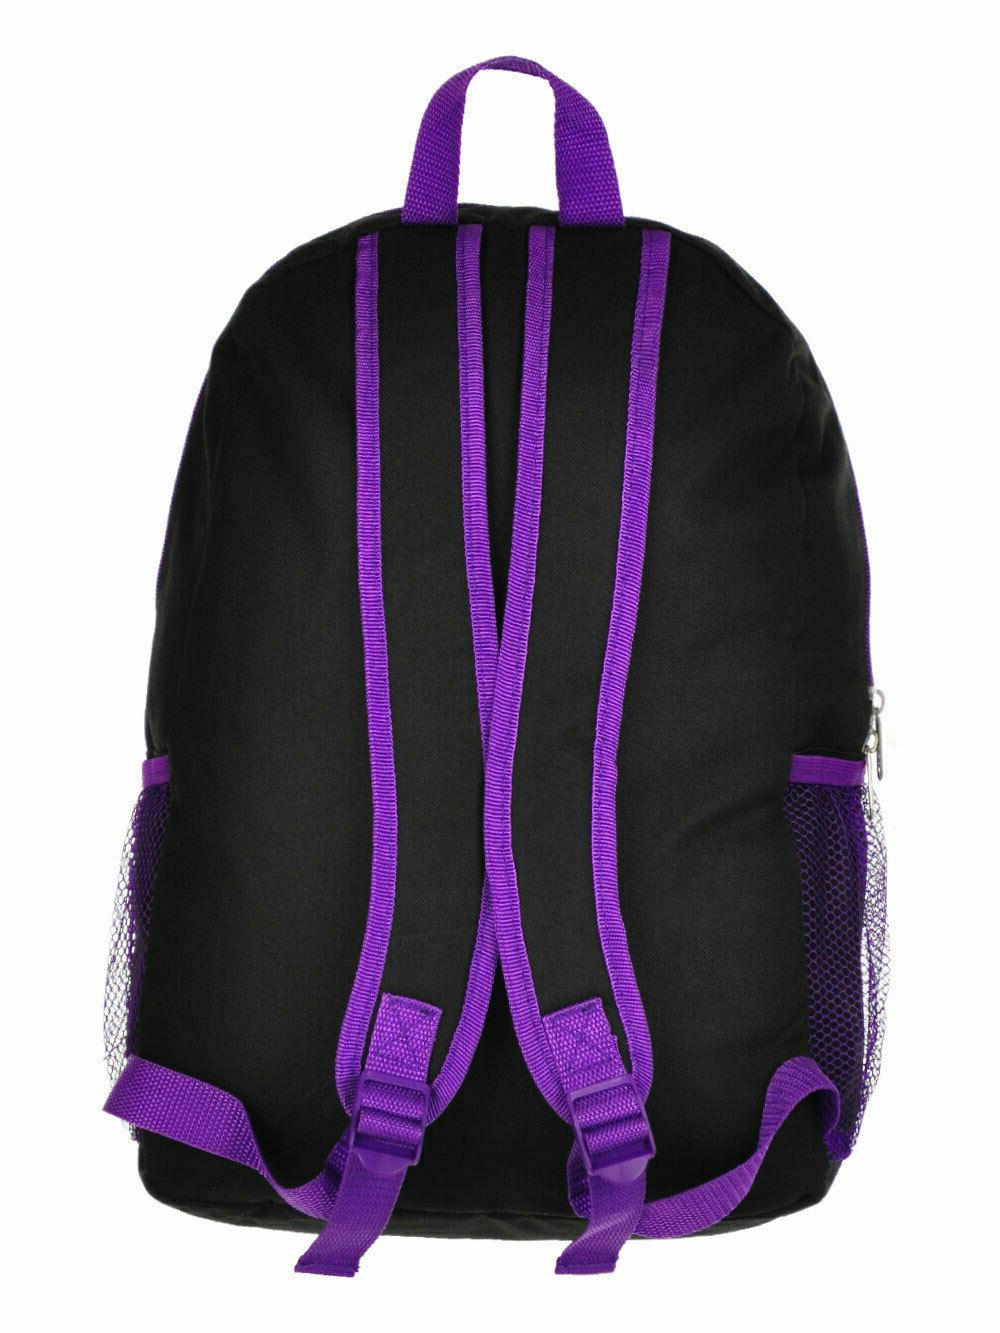 Backpack Lunch Box - 2 Piece